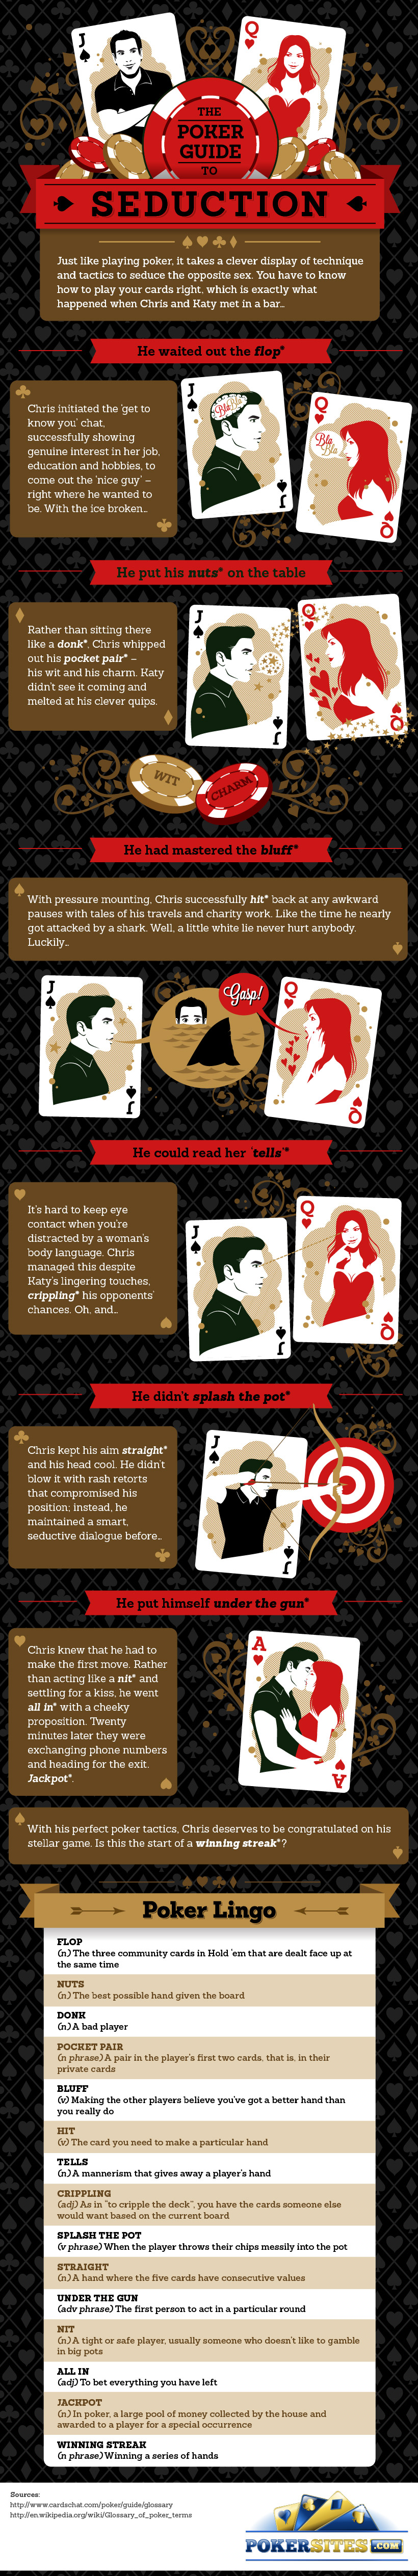 Poker Guide infographics